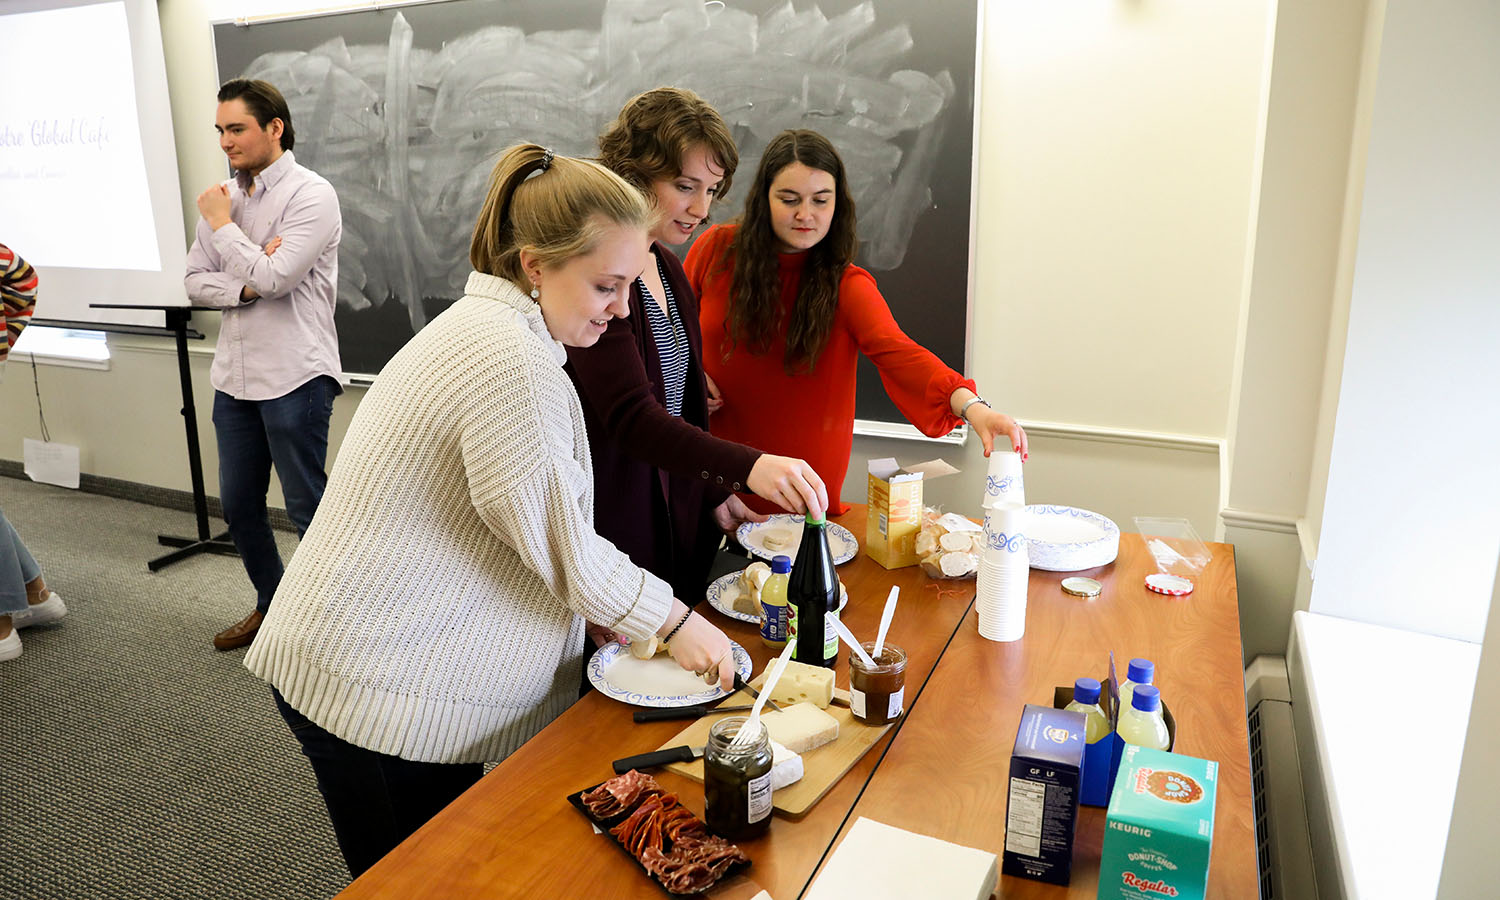 Guests build their own charcuterie board and sample French cheeses during the French Culture & Cuisine Global Café.